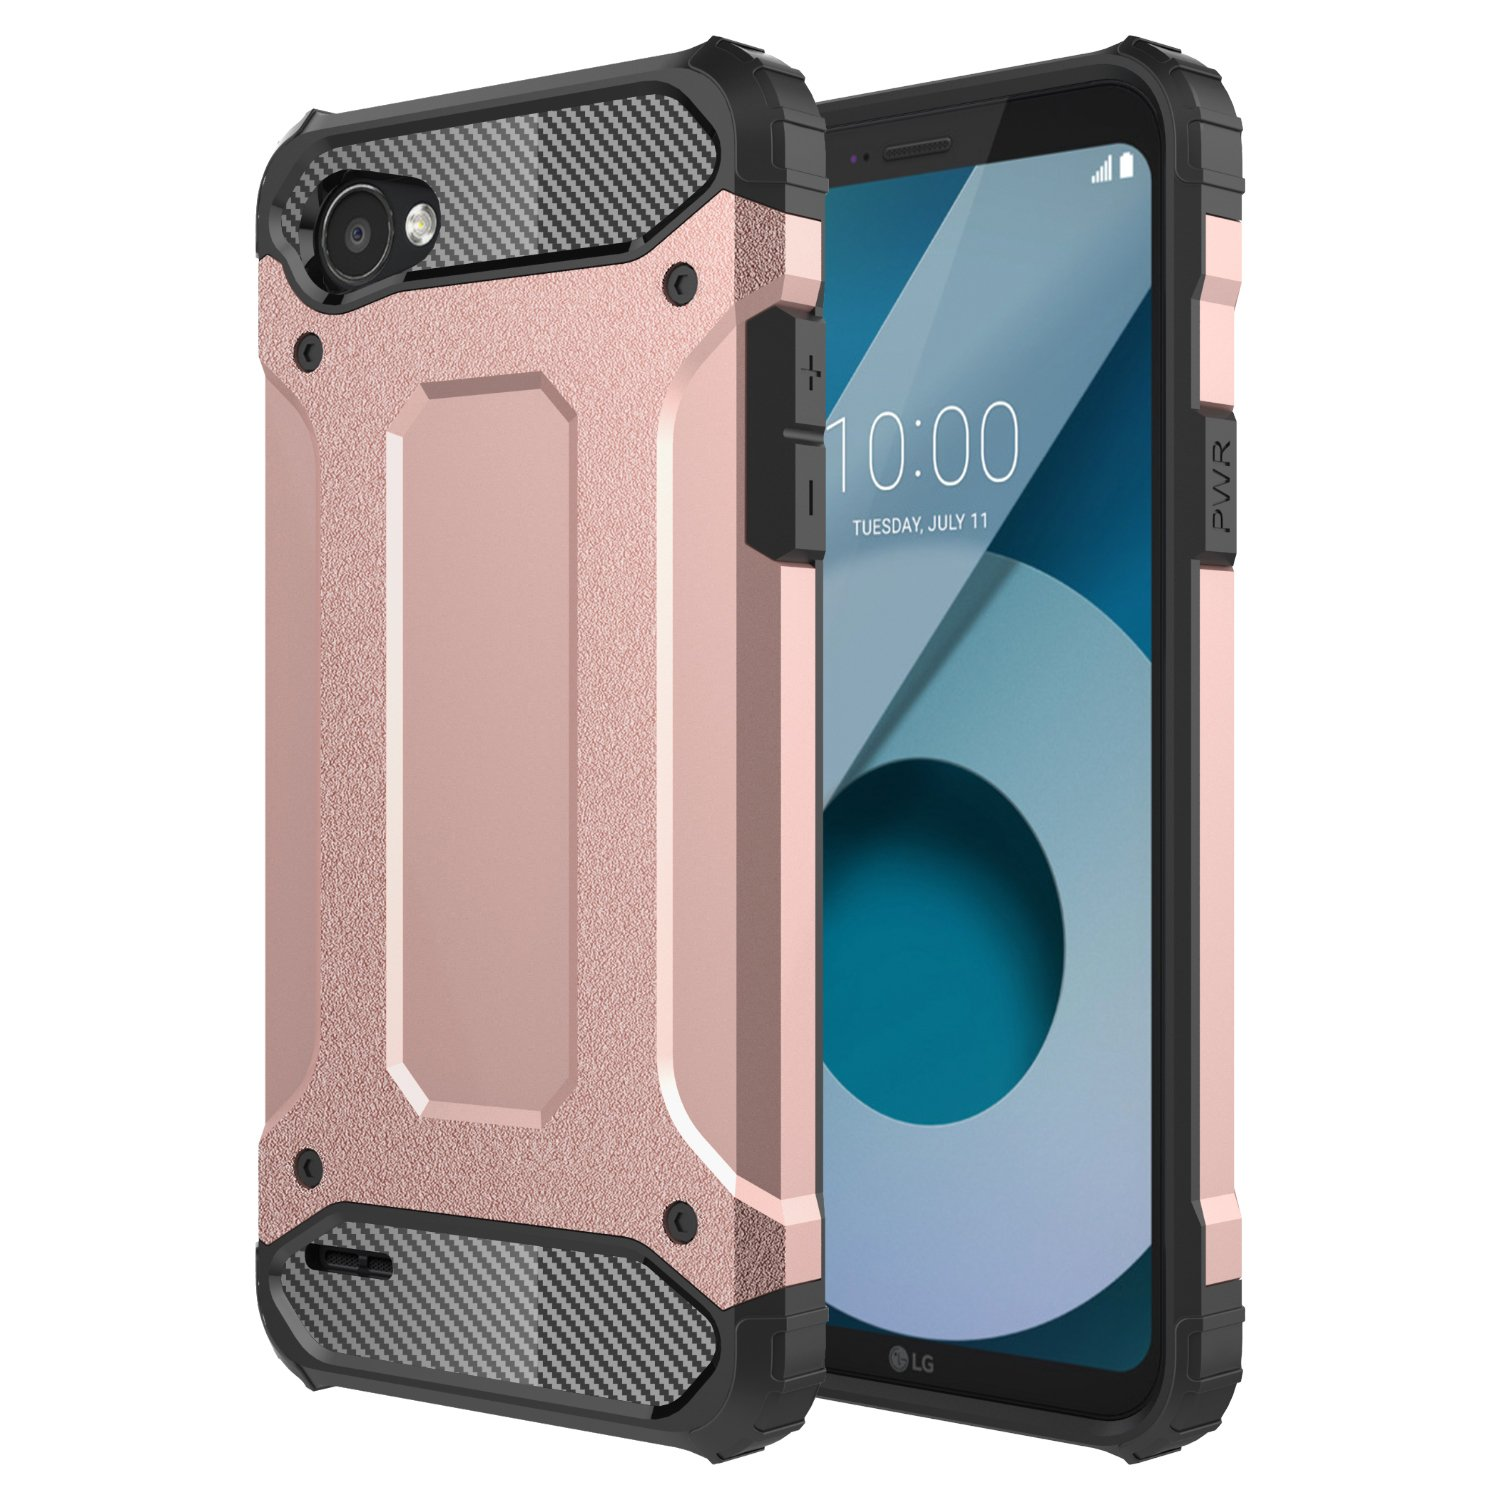 buy popular 56083 a3fe4 LG Q6 Case, LG Q6 Plus Case, LG Q6+,LG G6 MINI, Torryka Premium ANTI DROP  PROTECTION SLEEK SLIM FIT Anti-scratch Dual Layer Shockproof Dustproof  Armor ...